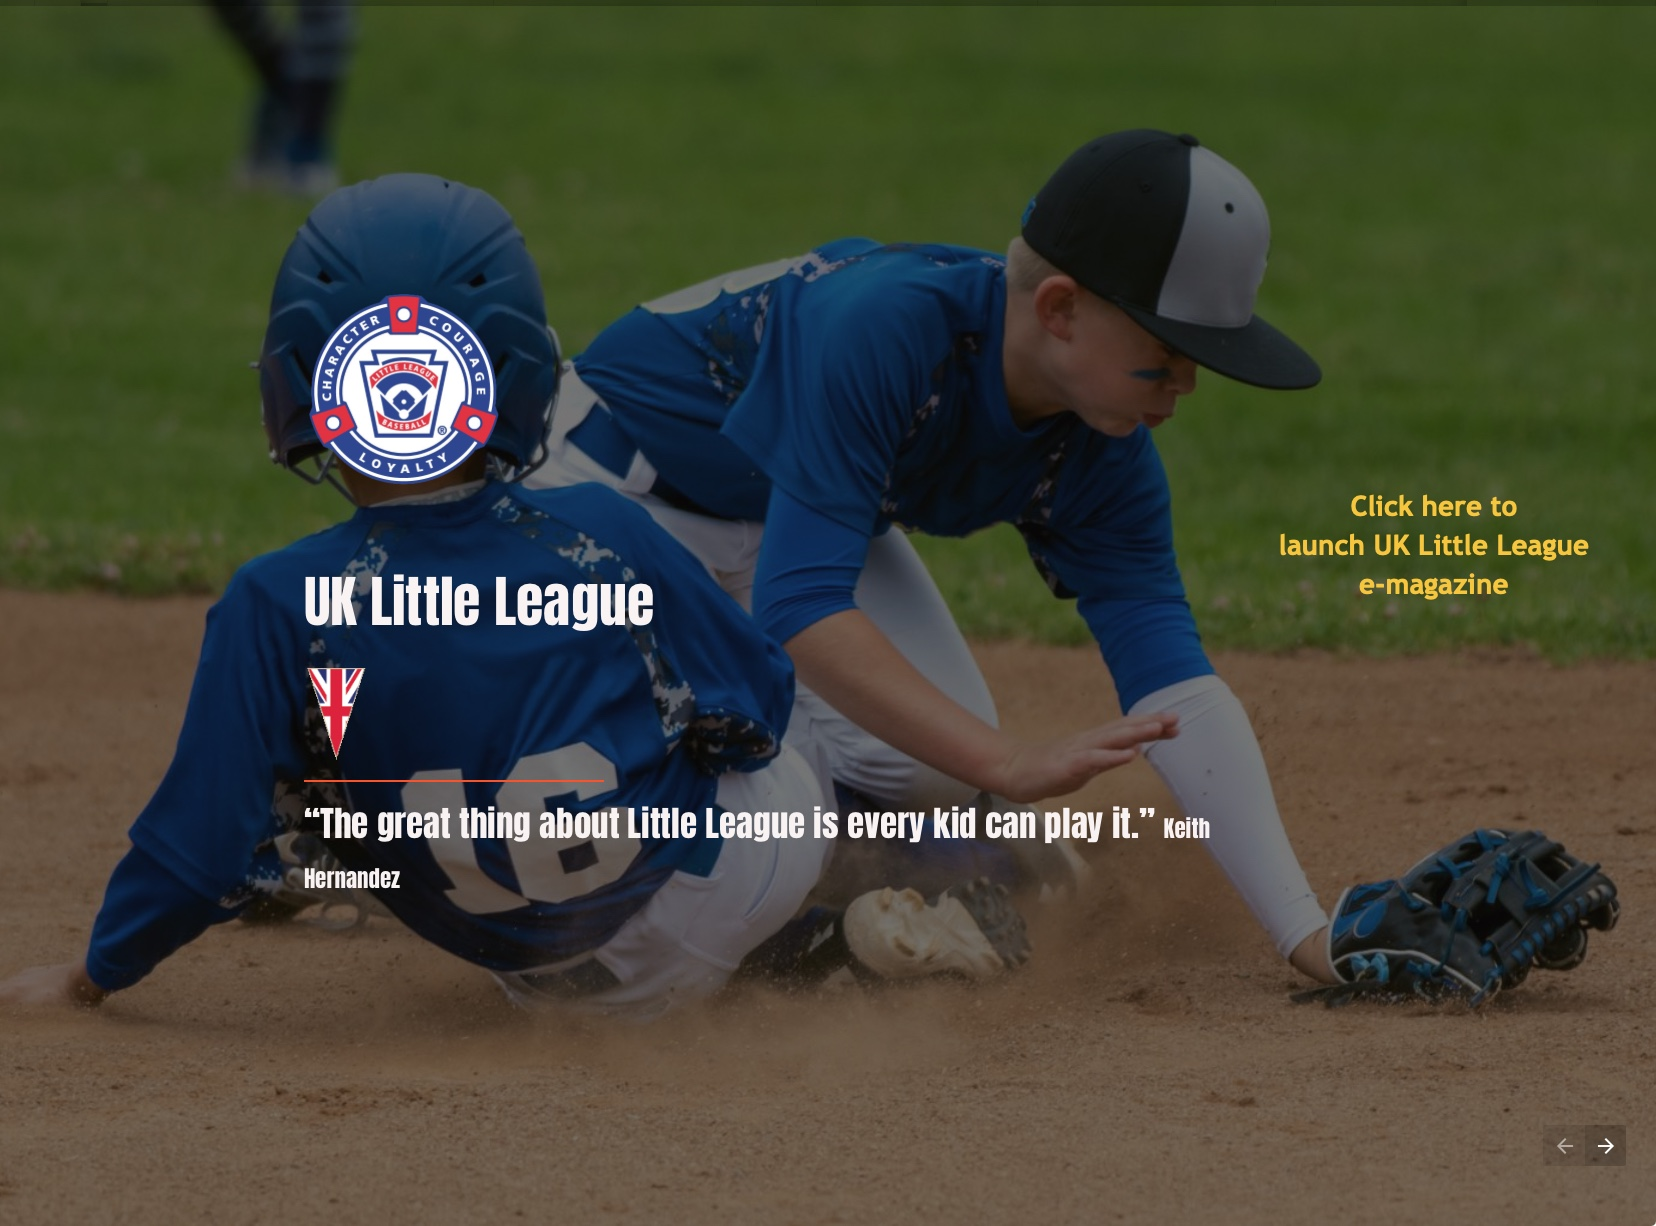 UK Little League e-Magazine